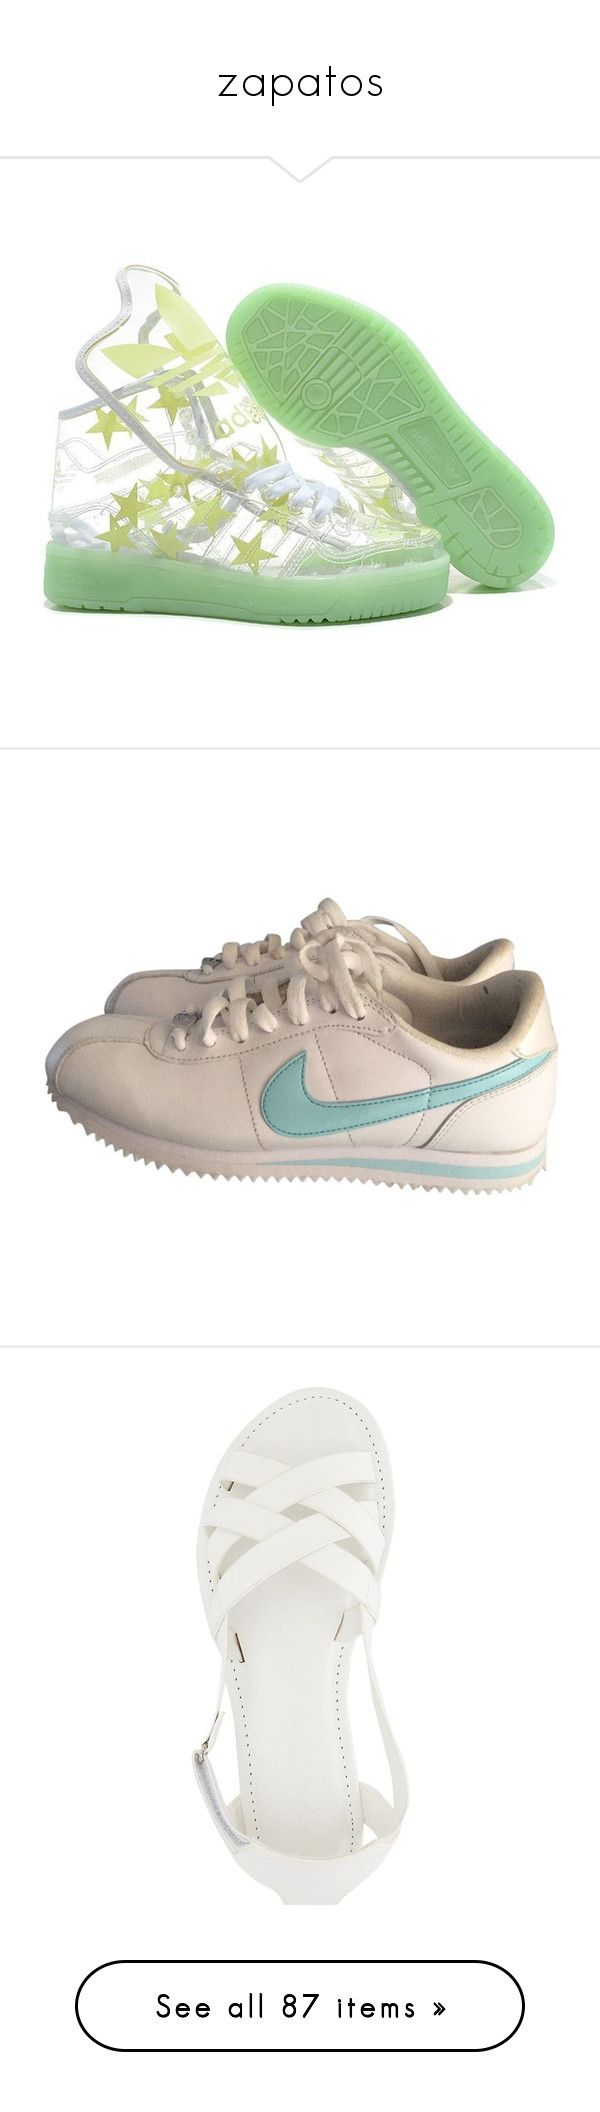 """zapatos"" by iamdeadpoetry ❤ liked on Polyvore featuring Boots, shoes, Unique, booties, sneakers, shoes - sneakers, nike trainers, white trainers, white sneakers and leather trainers"